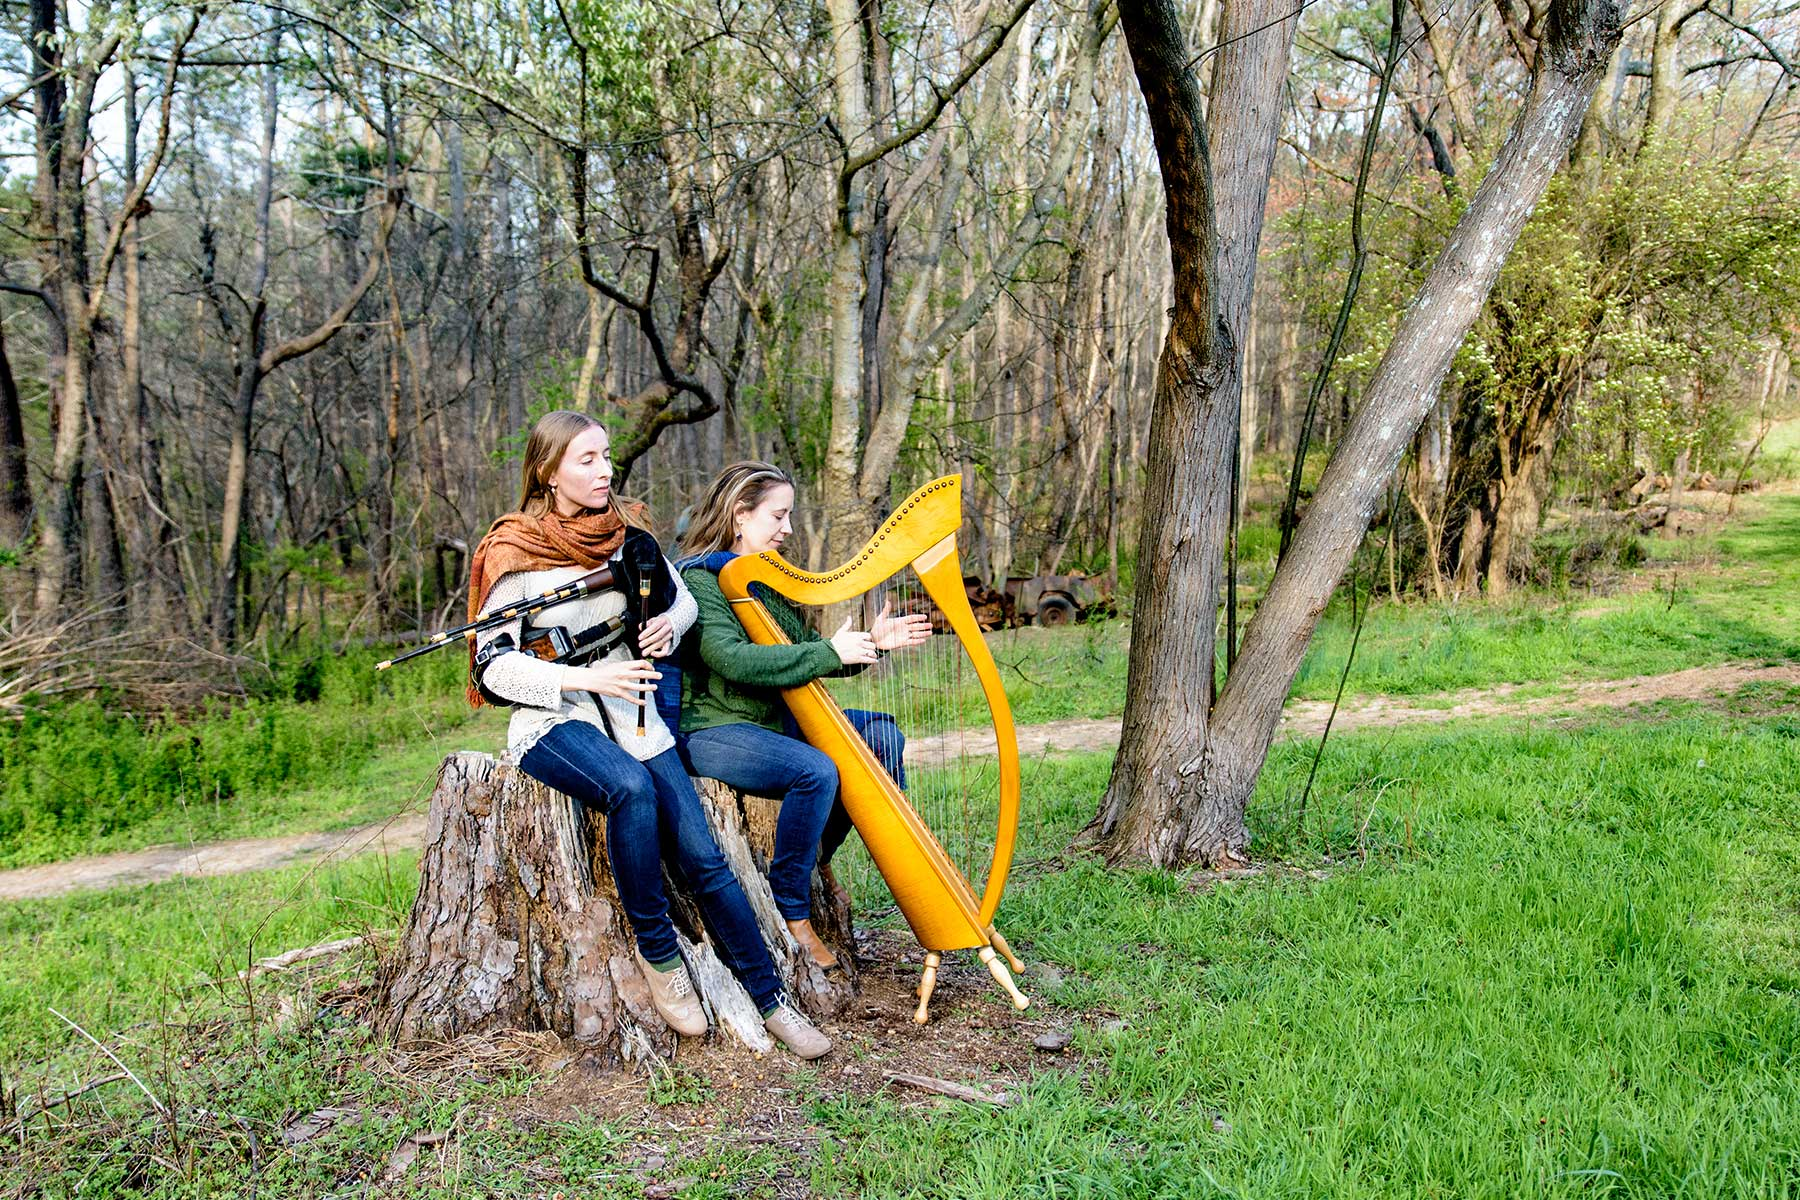 The Reel Sisters sitting on a tree stump. Rosalind is playing the Scottish smallpipes. Kelly is playing the harp.